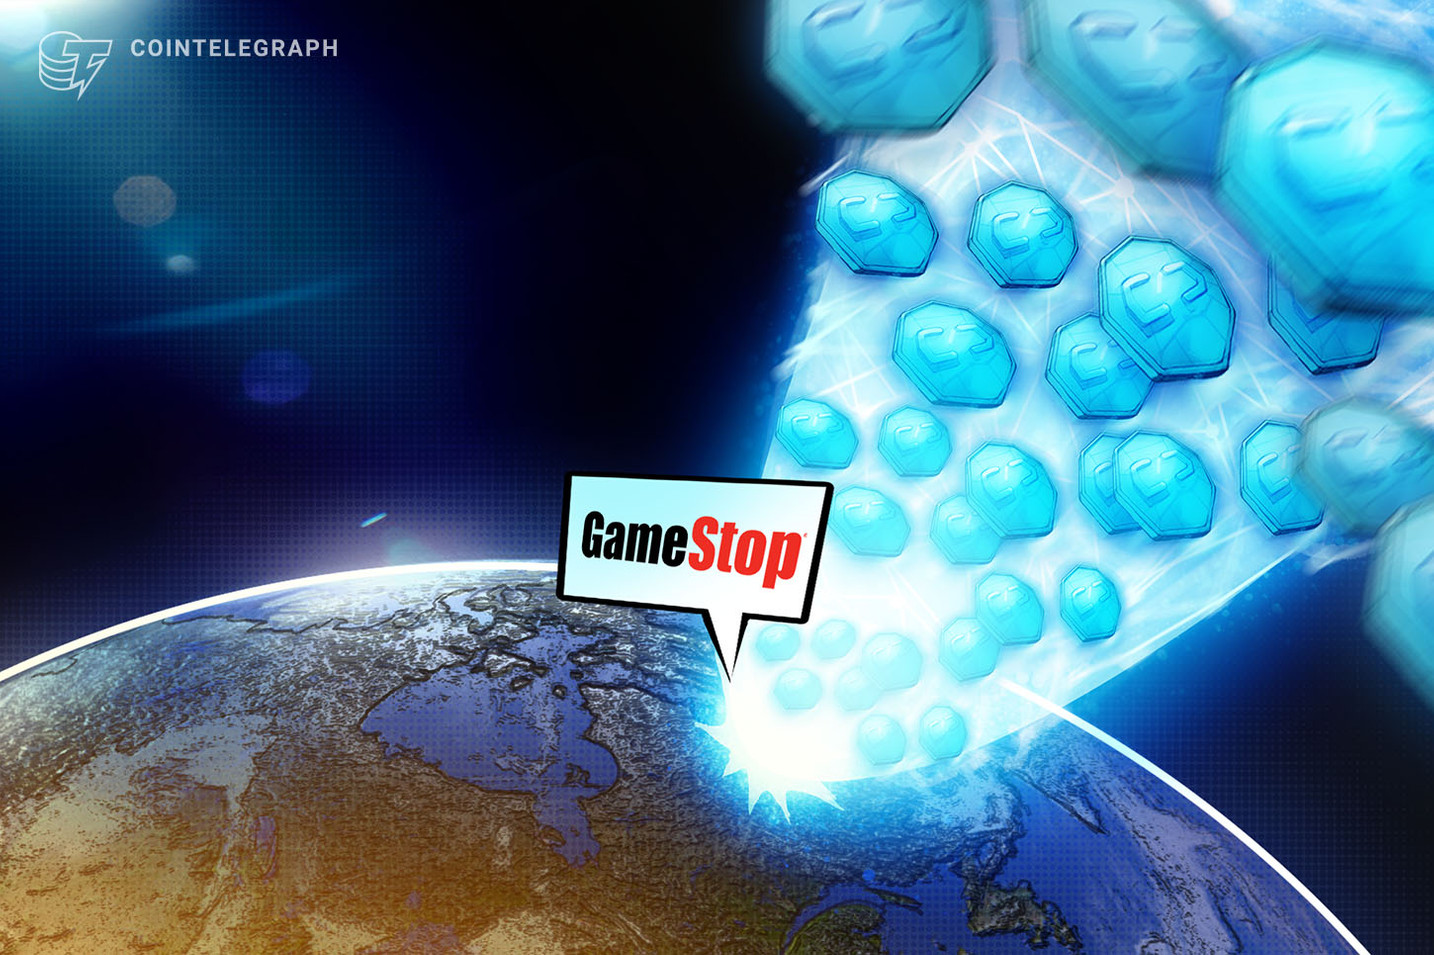 GME drops 14% as GameStop announces plans to sell up to 3.5M shares